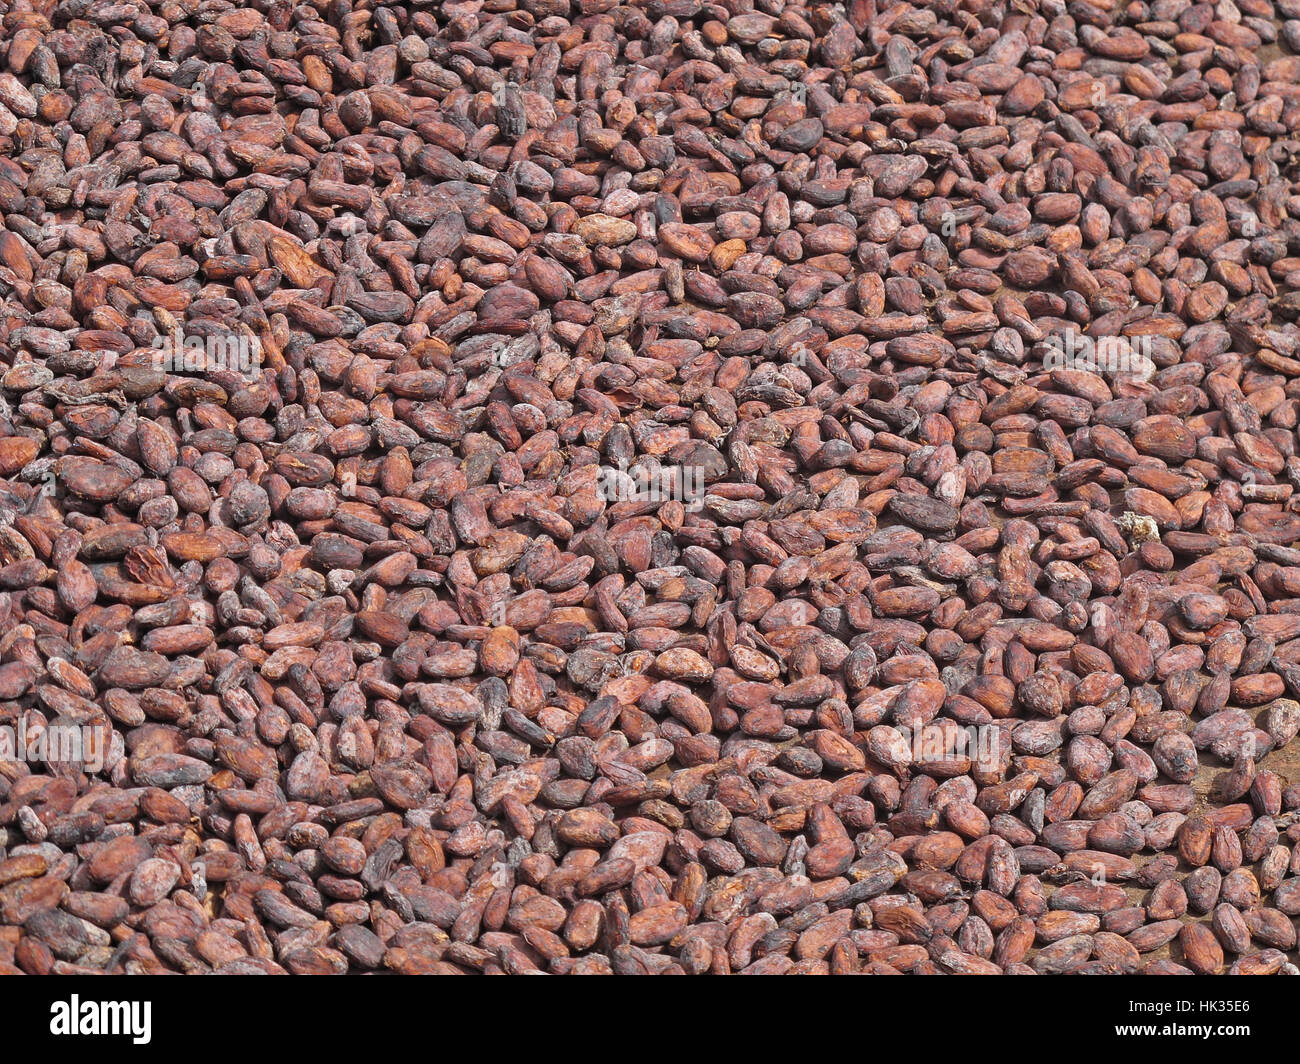 Cocoa (Theobroma cacao) beans drying in the sun  Fond Doux Plantation, St Lucia, Lesser Antilles       December - Stock Image